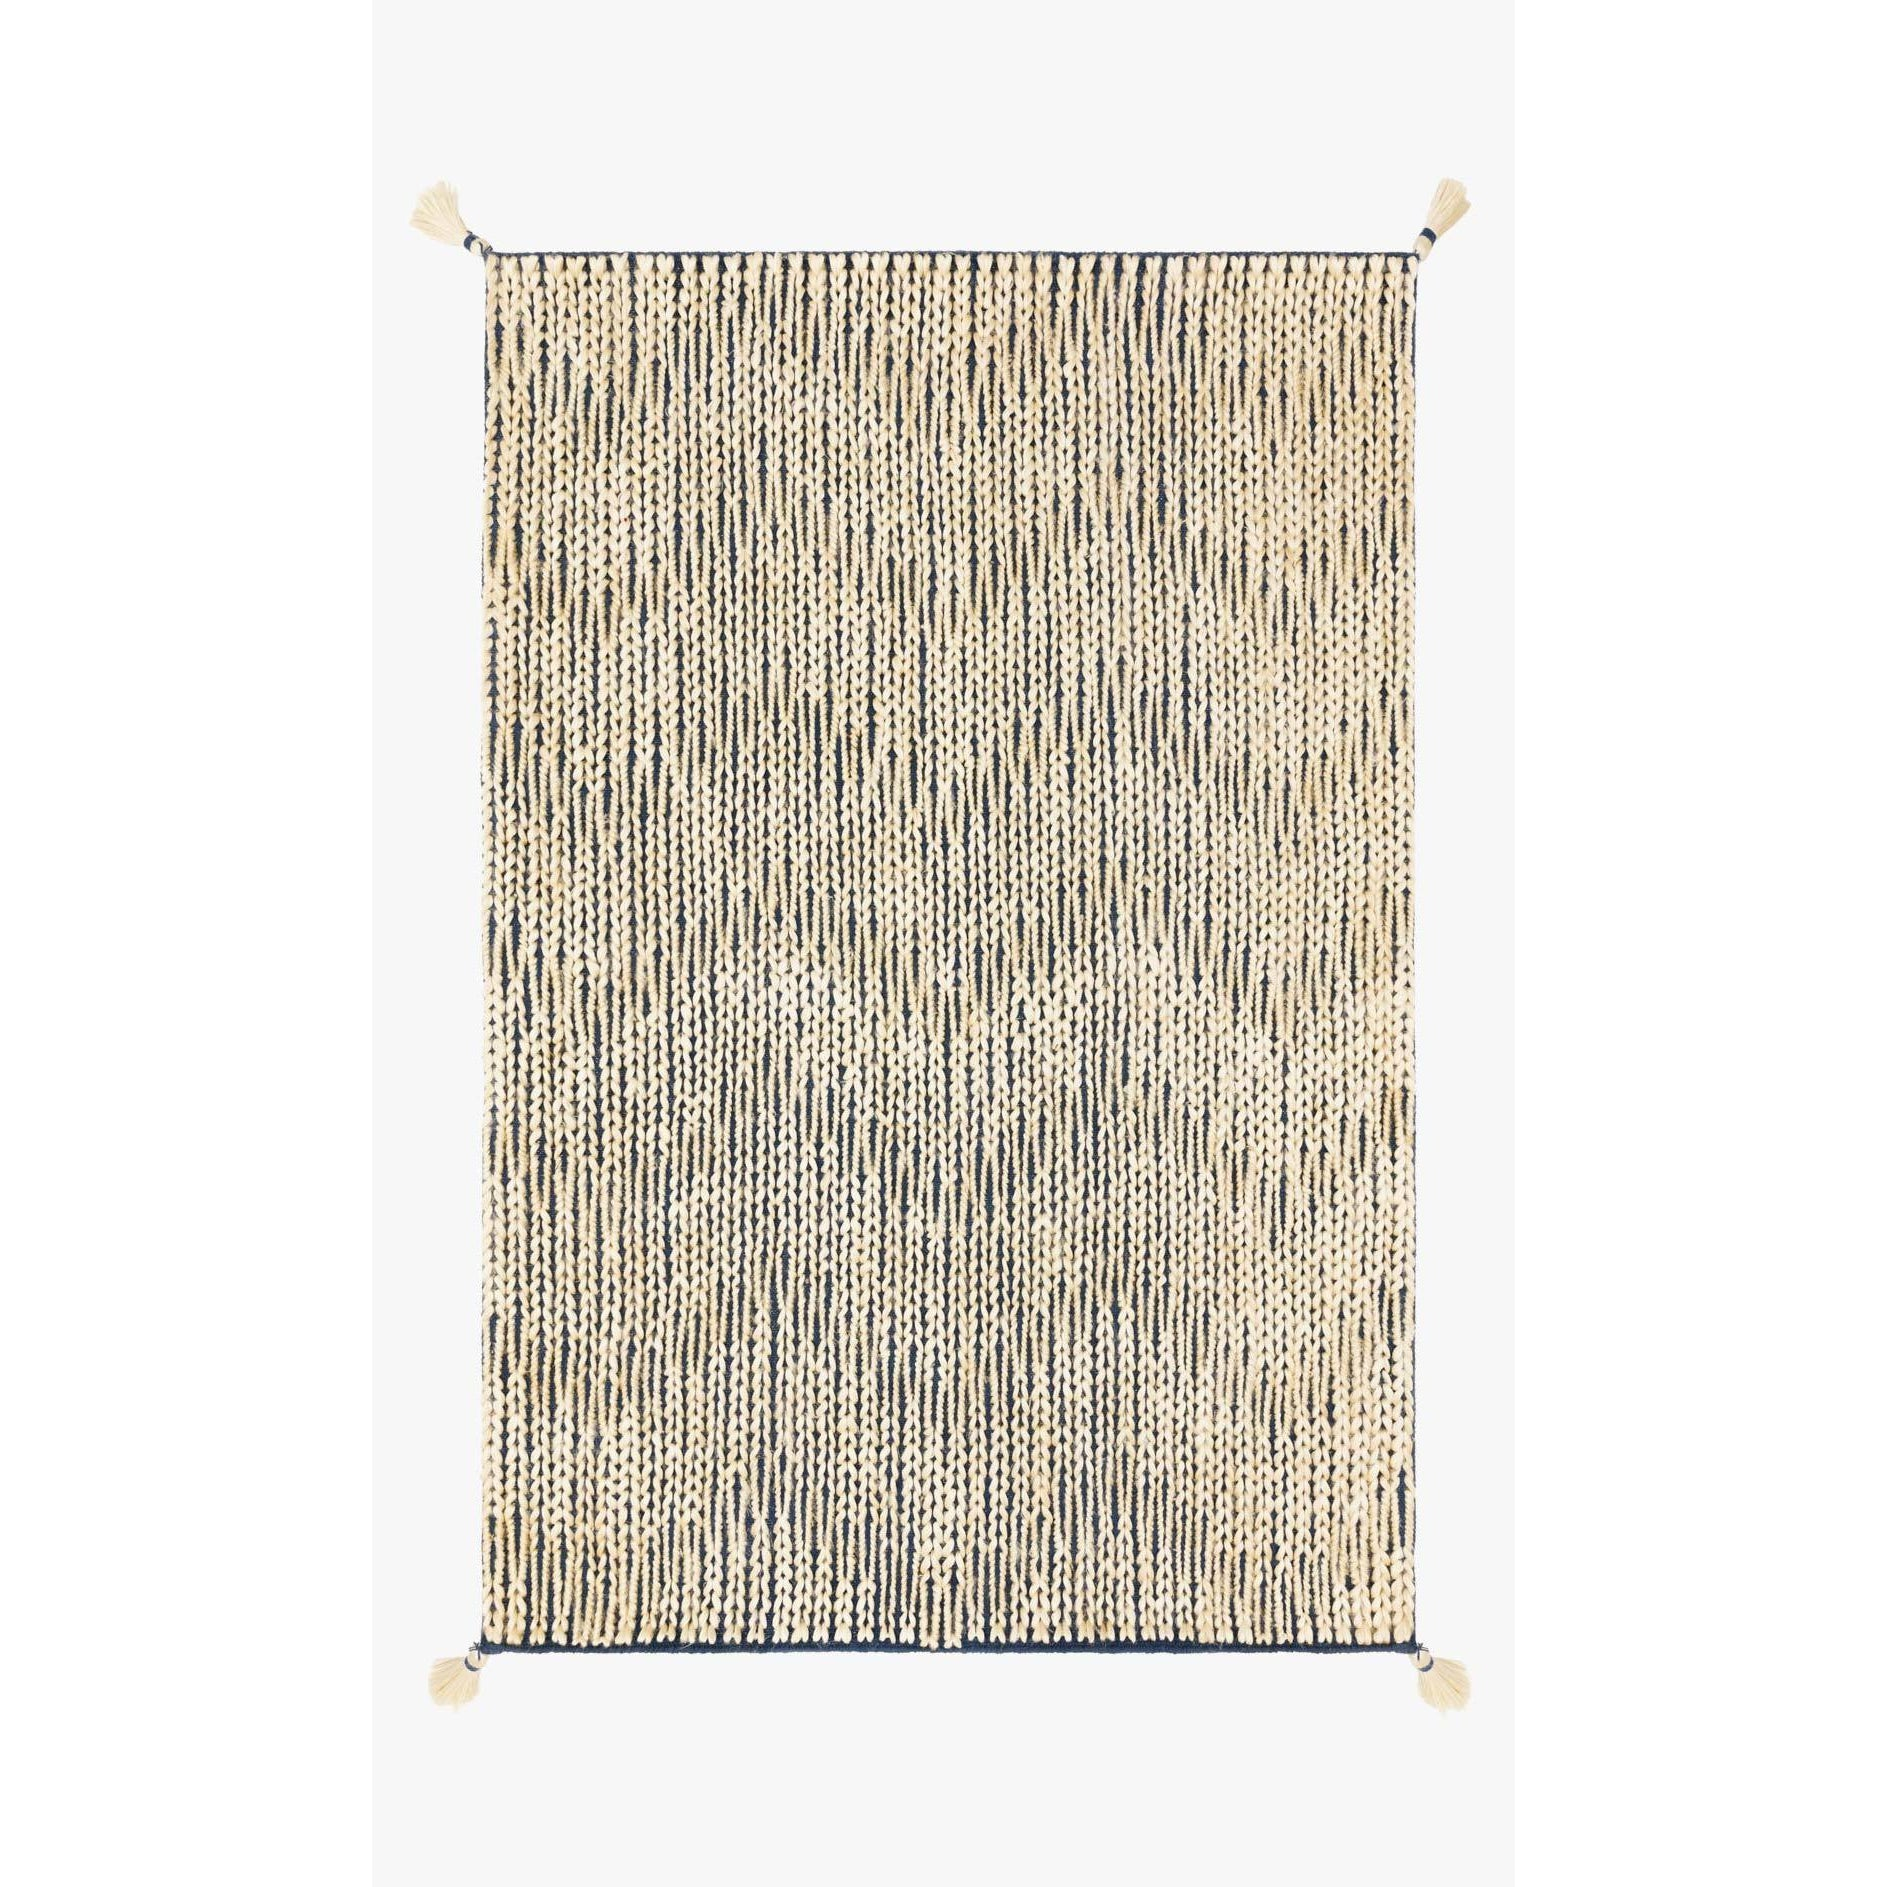 Justina Blakeney Playa Rug Collection - Ply-01 Navy/Ivory-Loloi Rugs-Blue Hand Home